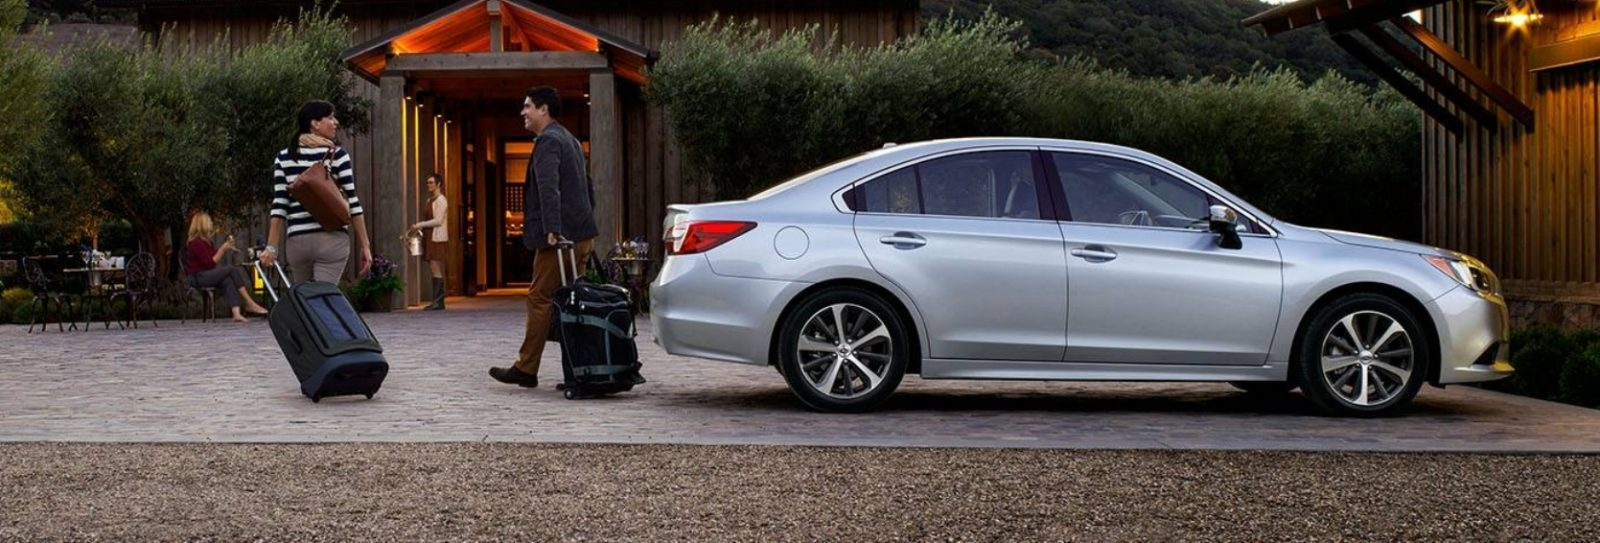 2015 Subaru Legacy Sedan -- More Lux and Tech in Cabin -- Finally Some Exterior Style -- Even 36MPG Highway  36